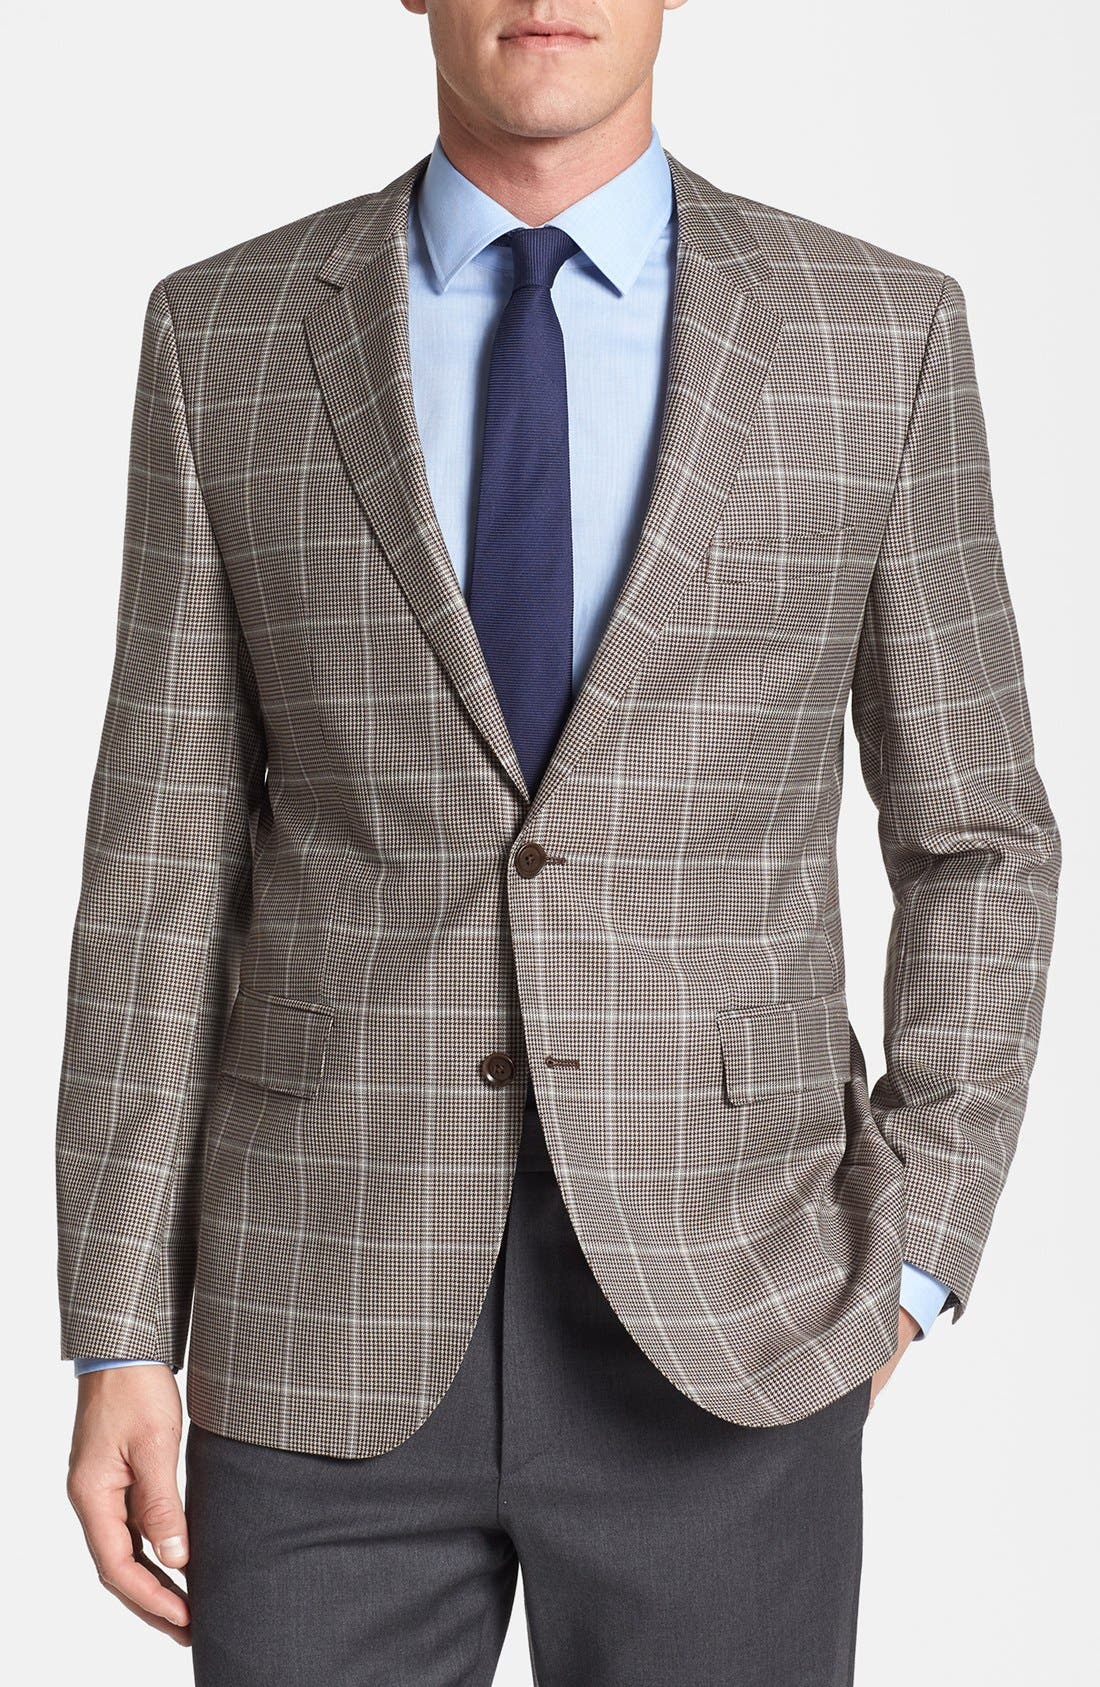 Alternate Image 1 Selected - BOSS HUGO BOSS 'The Smith' Trim Fit Plaid Sportcoat